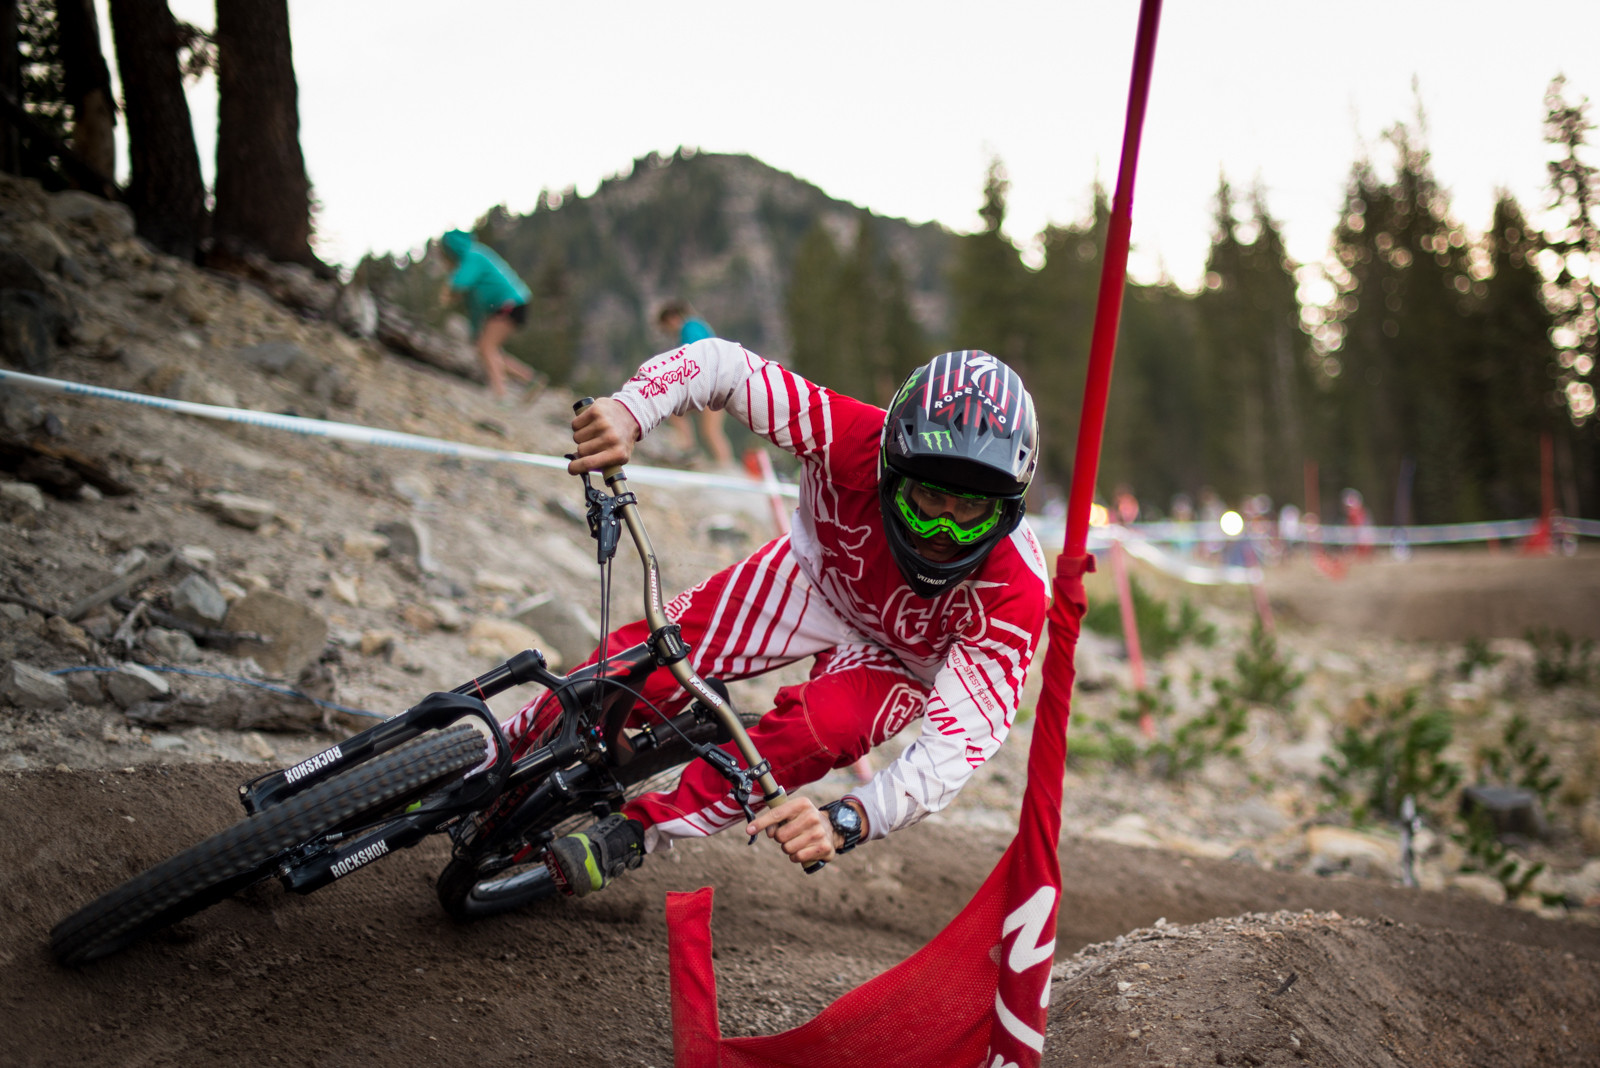 Mammoth Mountain Kamikaze Bike Games Dual Slalom - Mitch Ropelato - Mammoth Mountain Kamikaze Bike Games Dual Slalom - Mountain Biking Pictures - Vital MTB